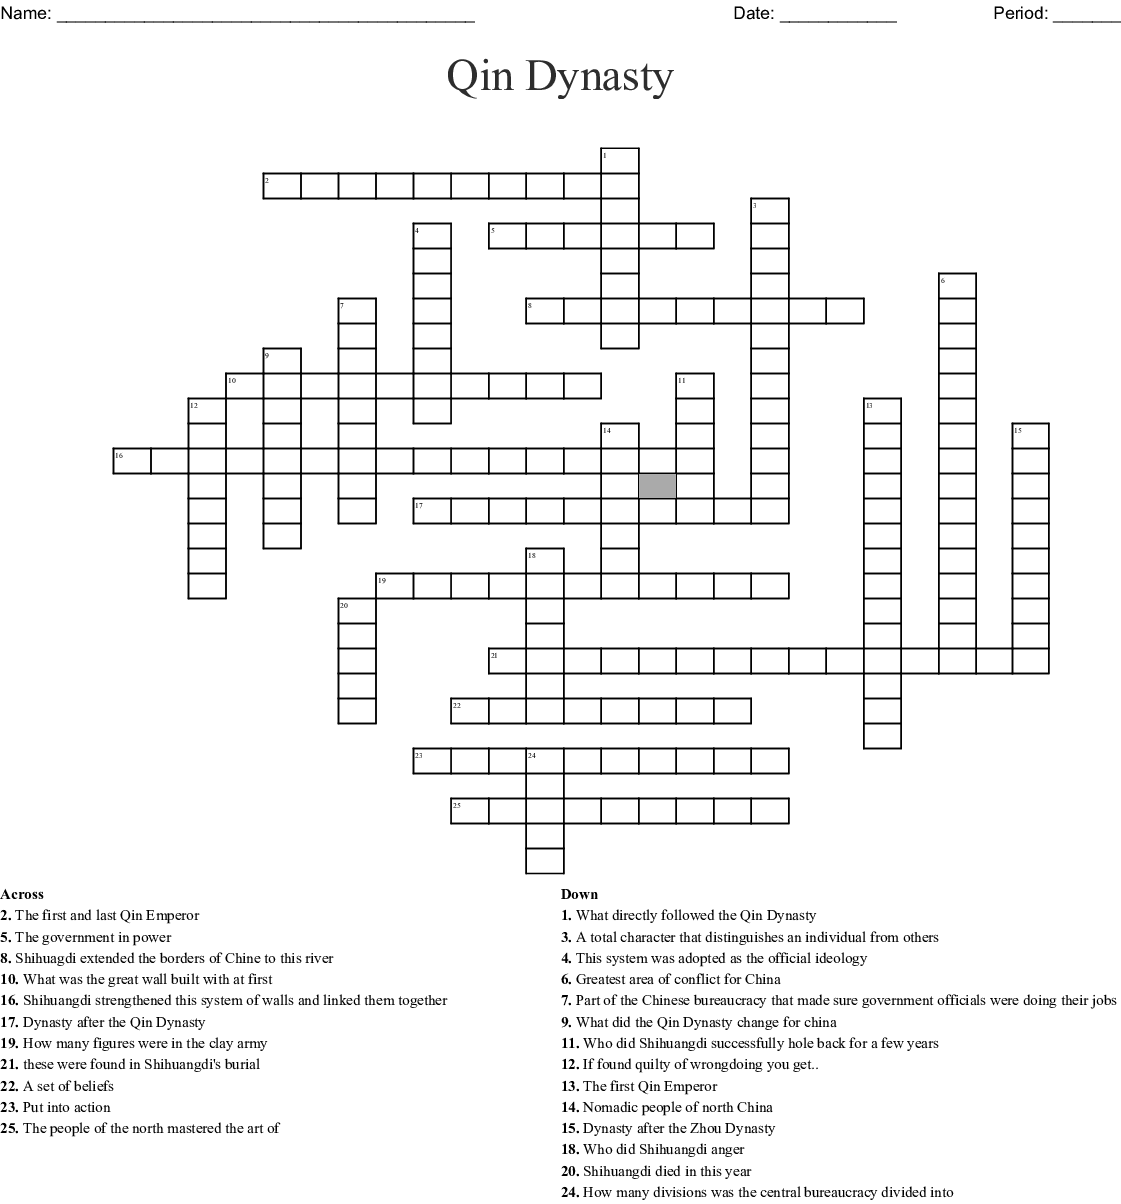 The Qin Dynasty Crossword